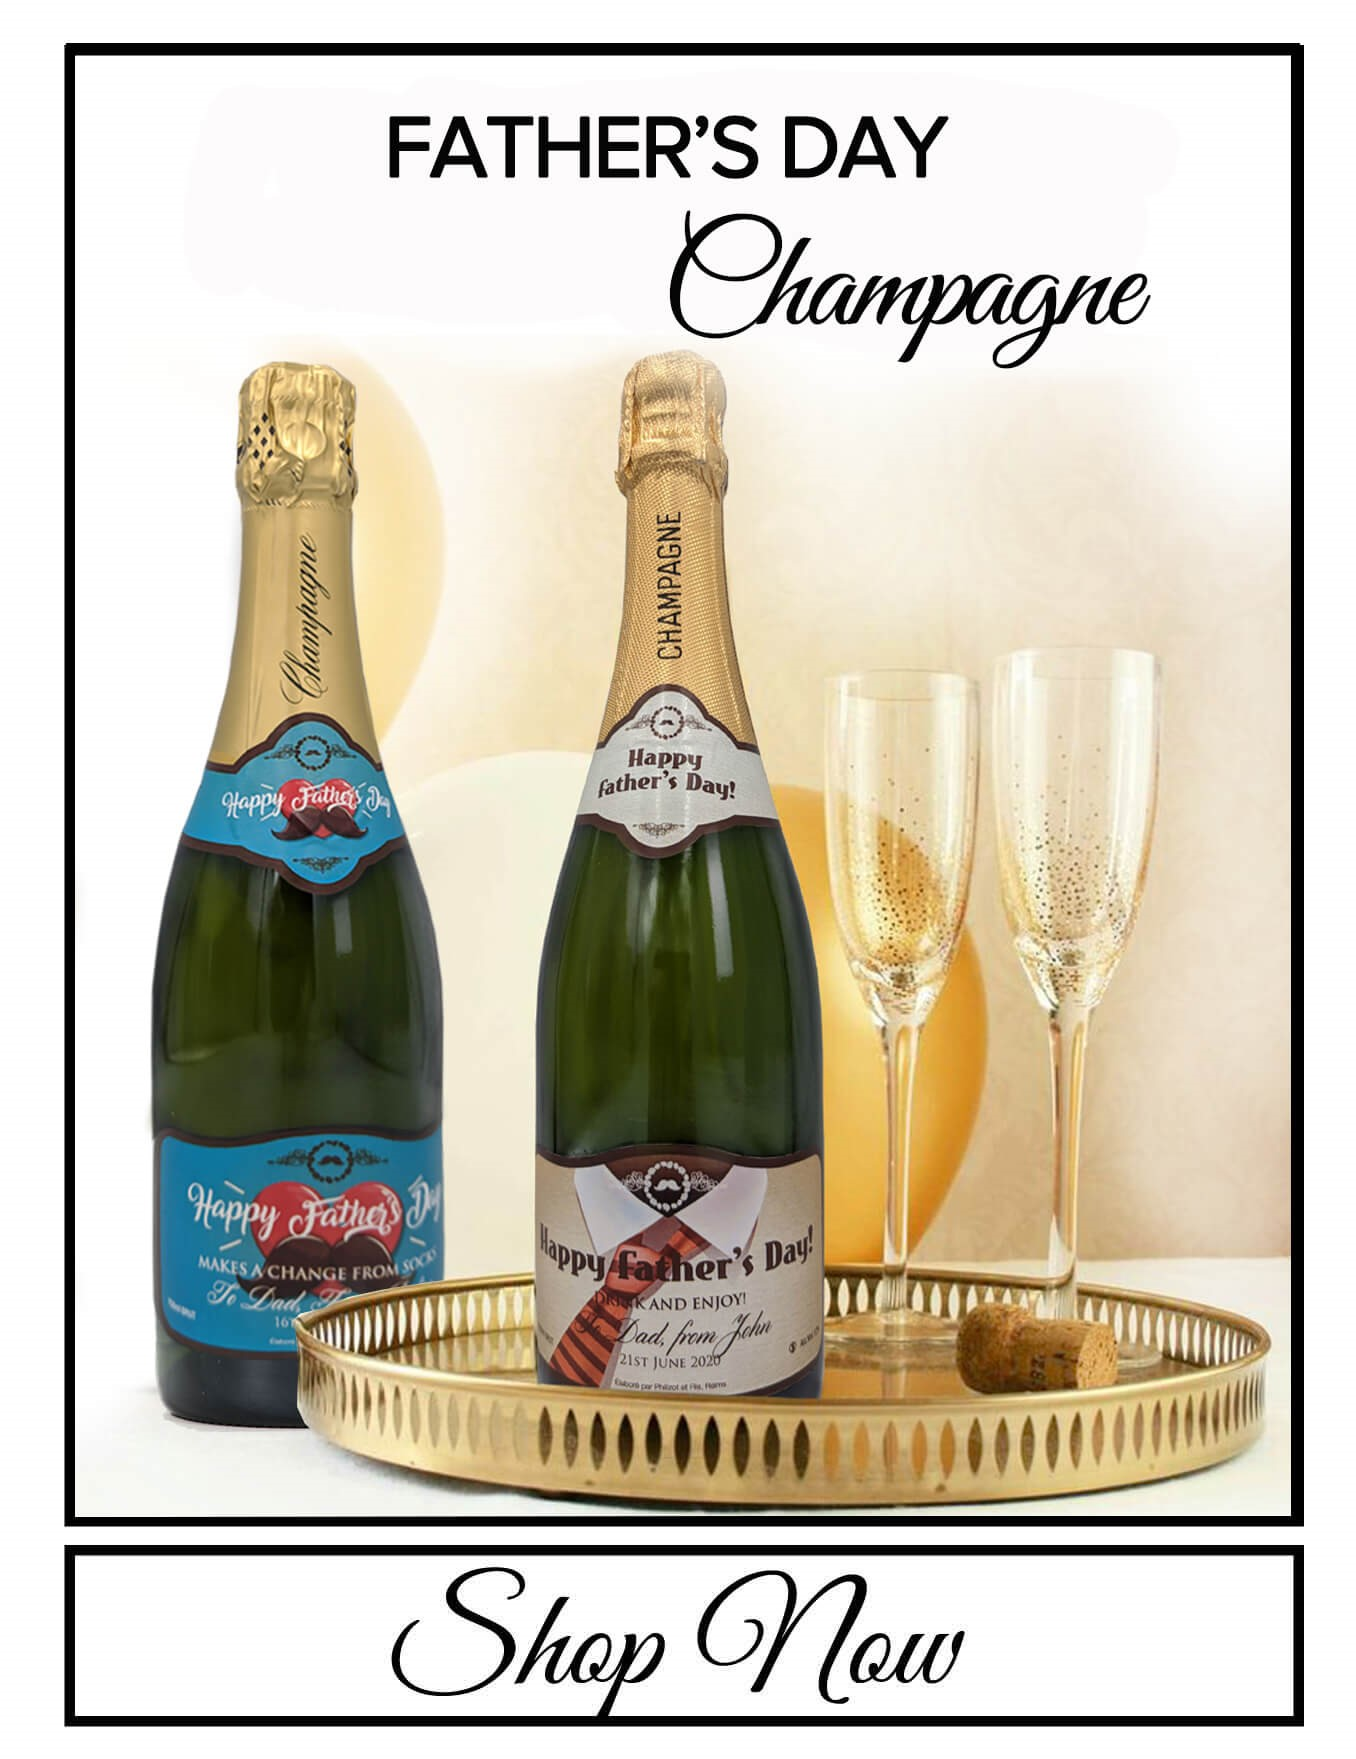 personalised Champagne bottle label delivery uk sparkling wine valentine's gift present